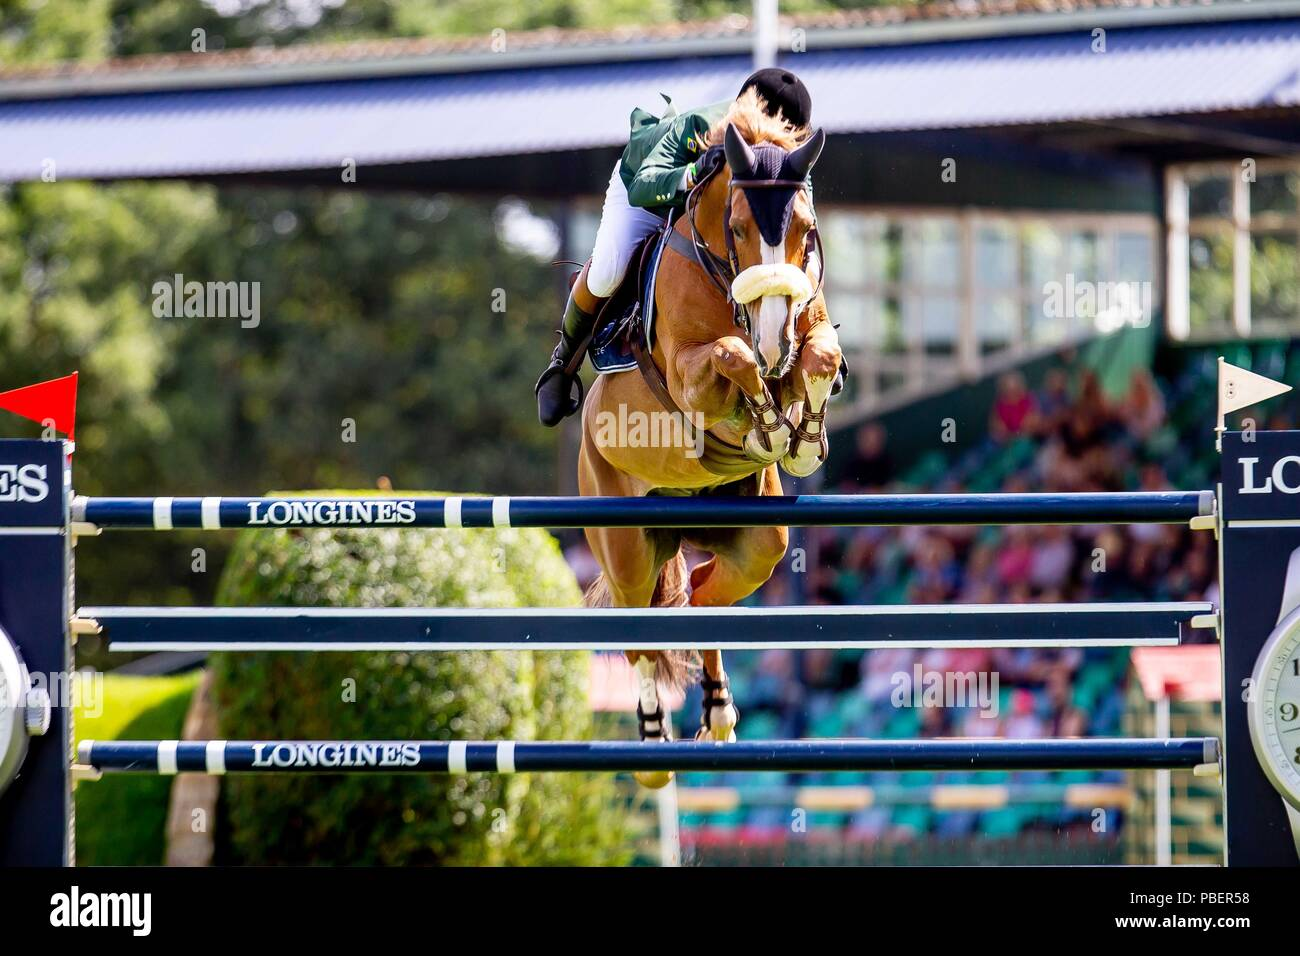 Sussex, UK. 28th July 2018. Luis Felipe Azevedo Filho riding Hermes Van De Vrobautshoeve.  BRA. The Bunn Lesiure Salver. Jump off. Showjumping. Longines FEI Jumping Nations Cup of Great Britain at the BHS Royal International Horse Show. All England Jumping Course. Hickstead. Great Britain. 28/07/2018. Credit: Sport In Pictures/Alamy Live News - Stock Image